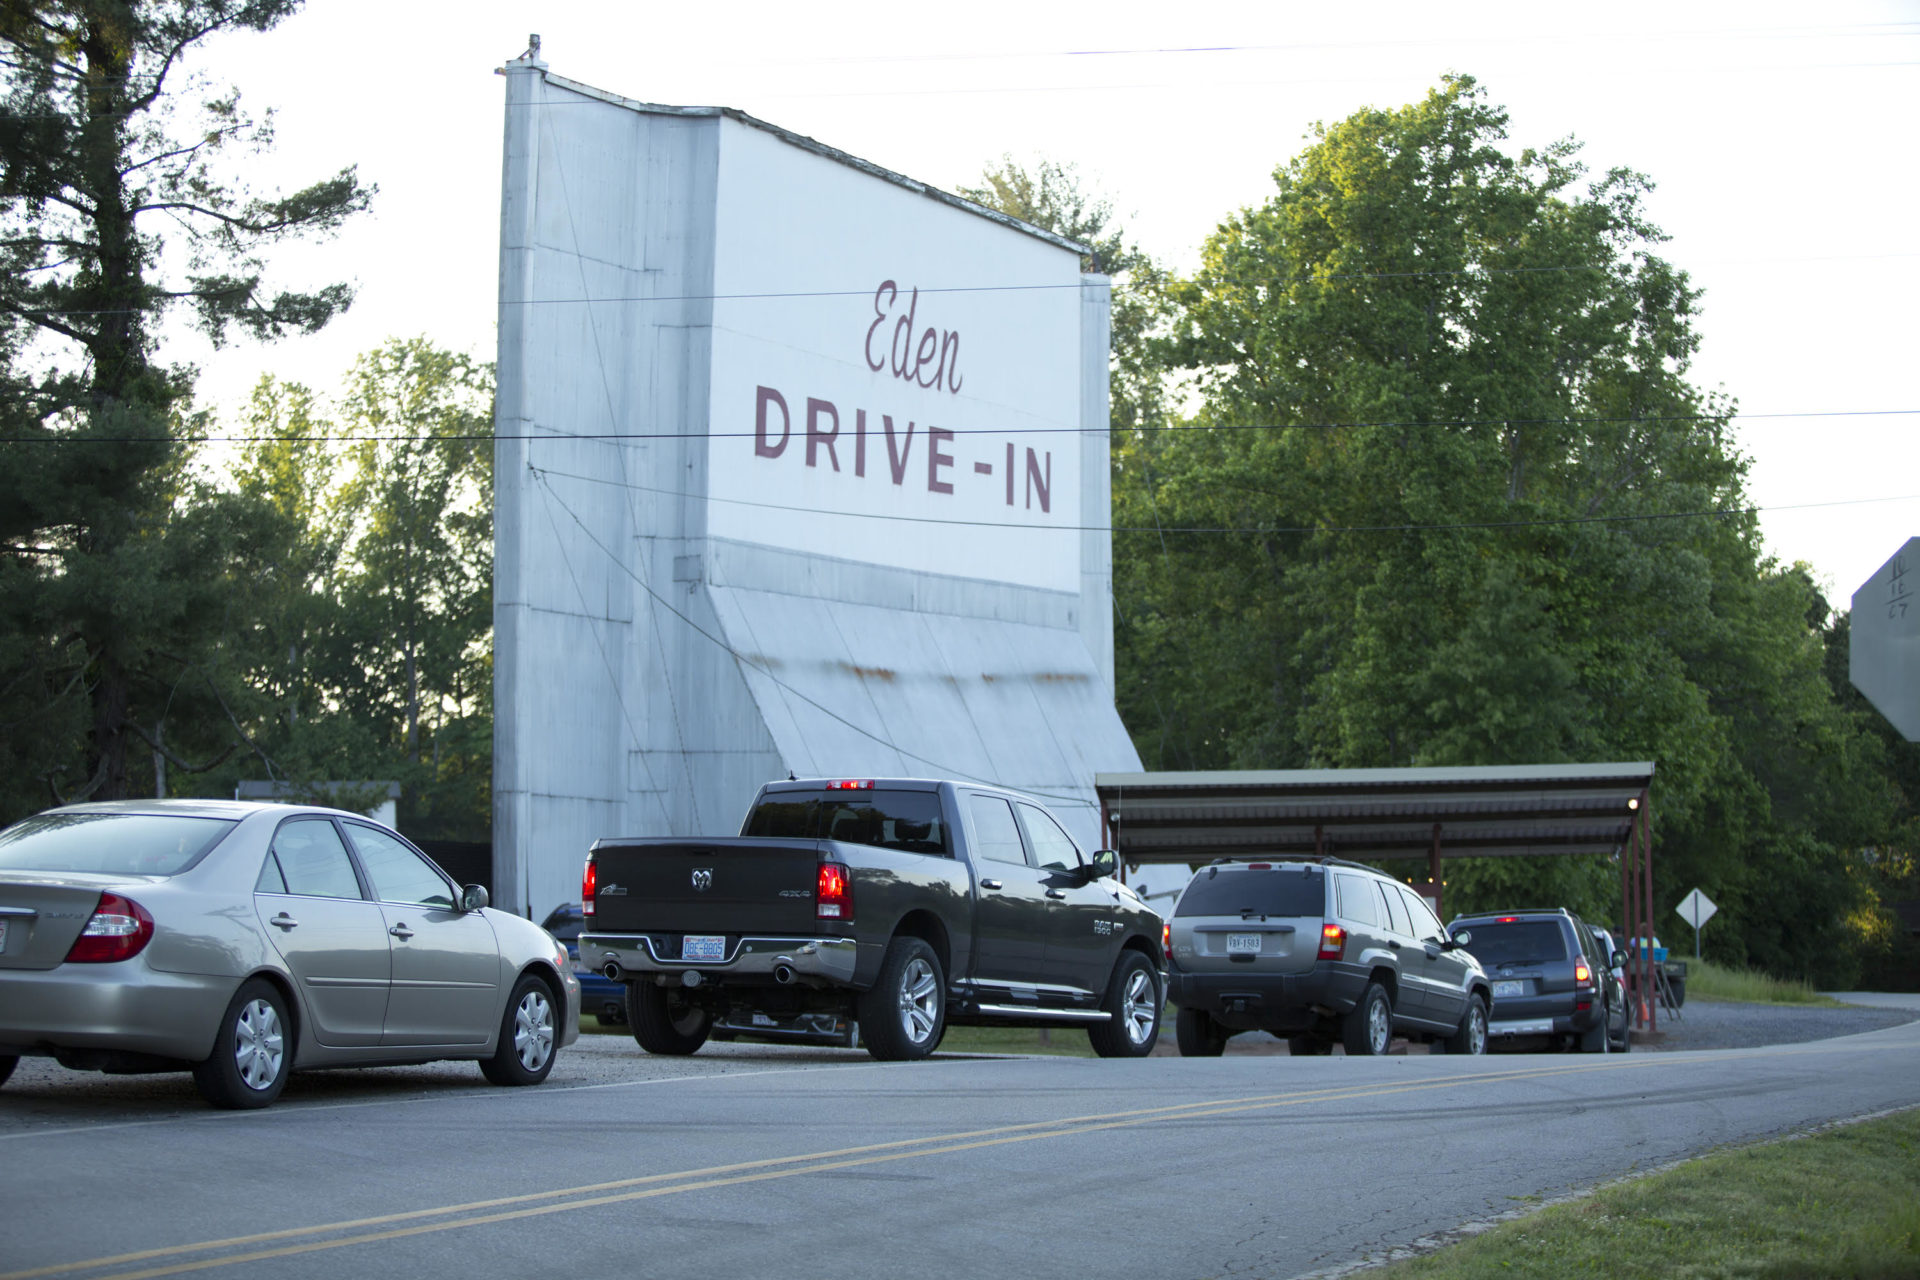 Cars lined up waiting at the entrance to the Eden Drive-In.